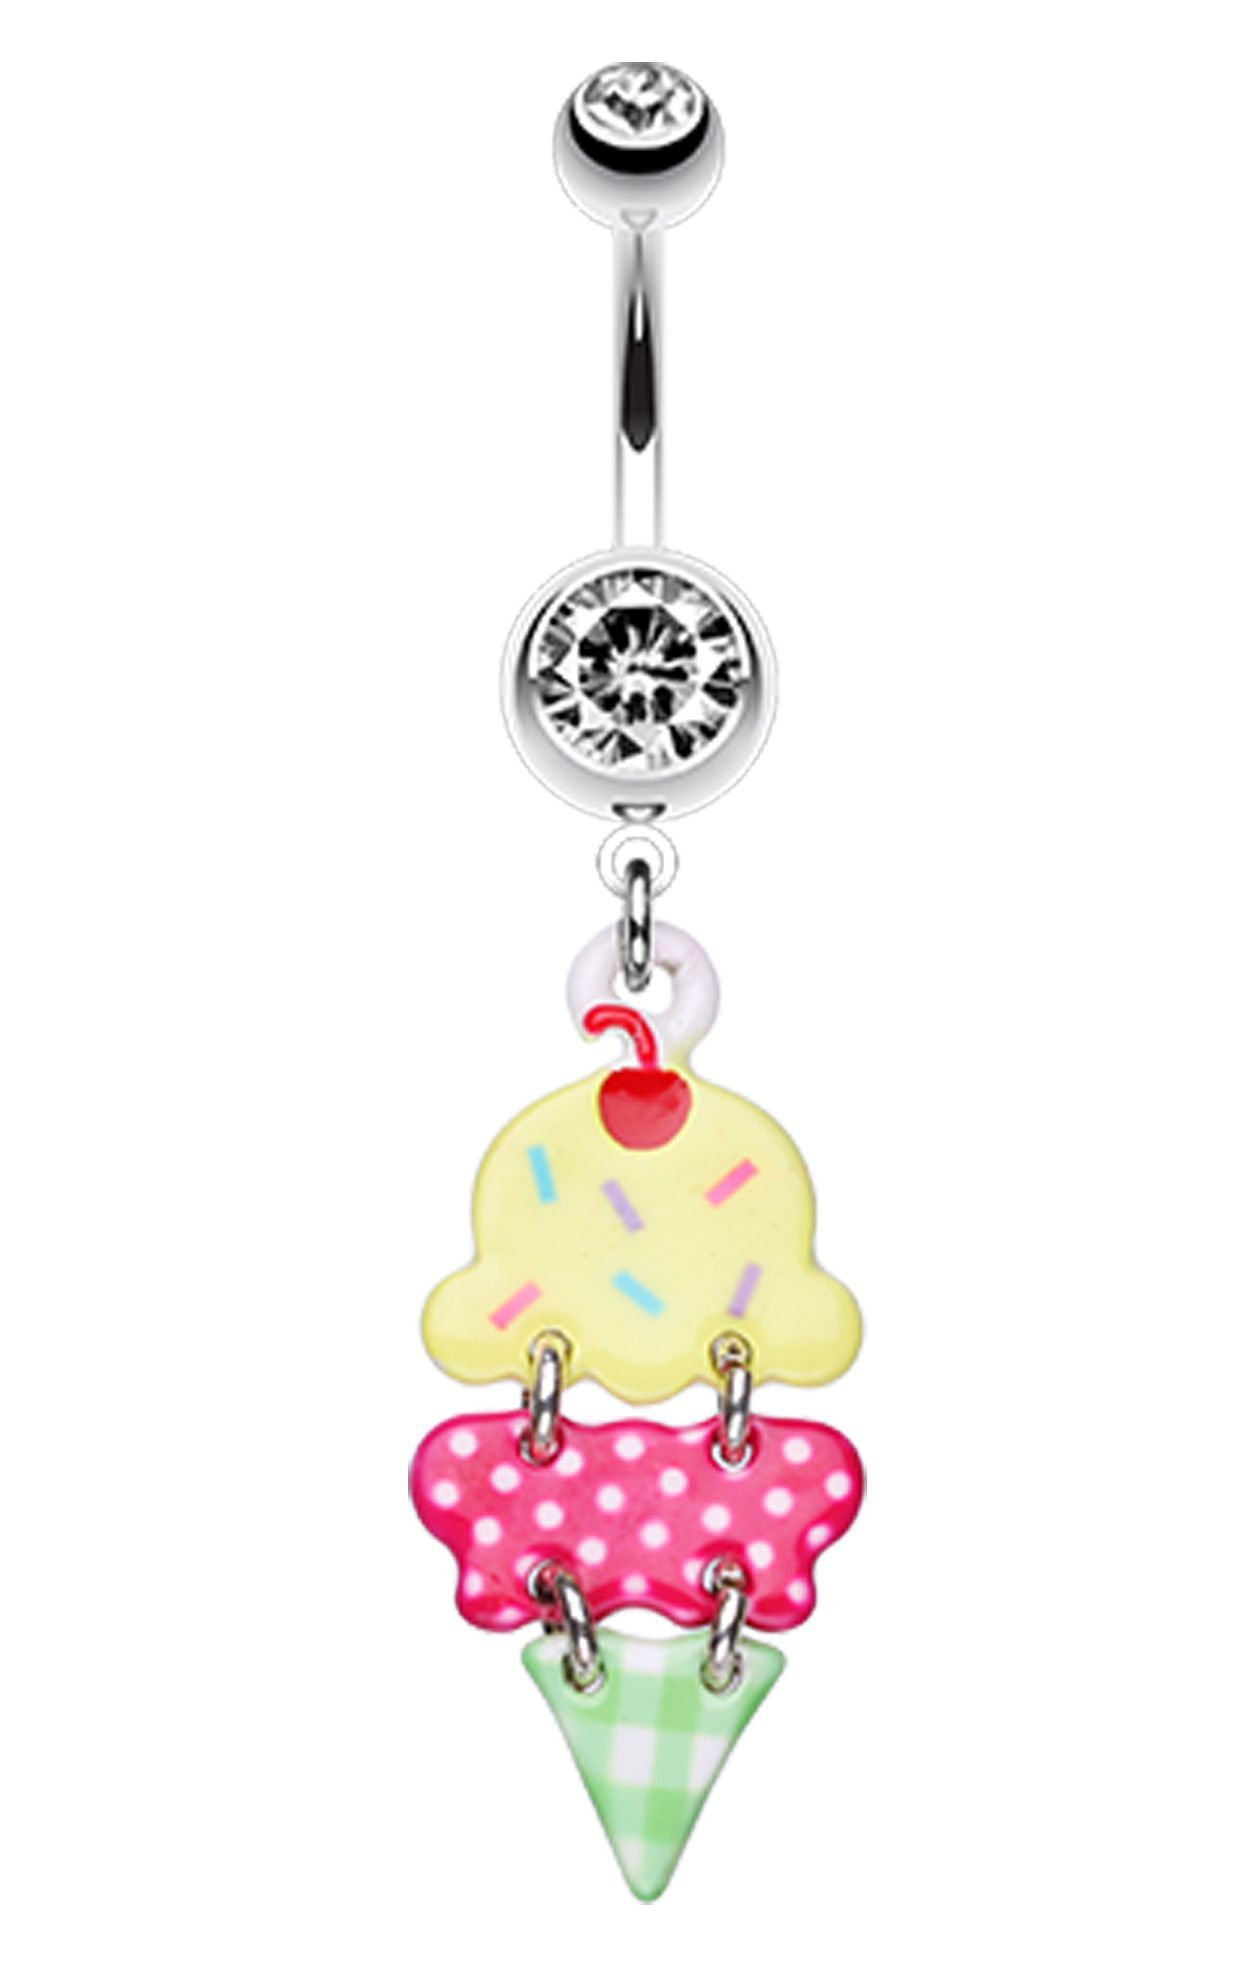 Nose piercing earrings  Double Scoop Ice Cream Cone Belly Button Ring  Belly button Ice